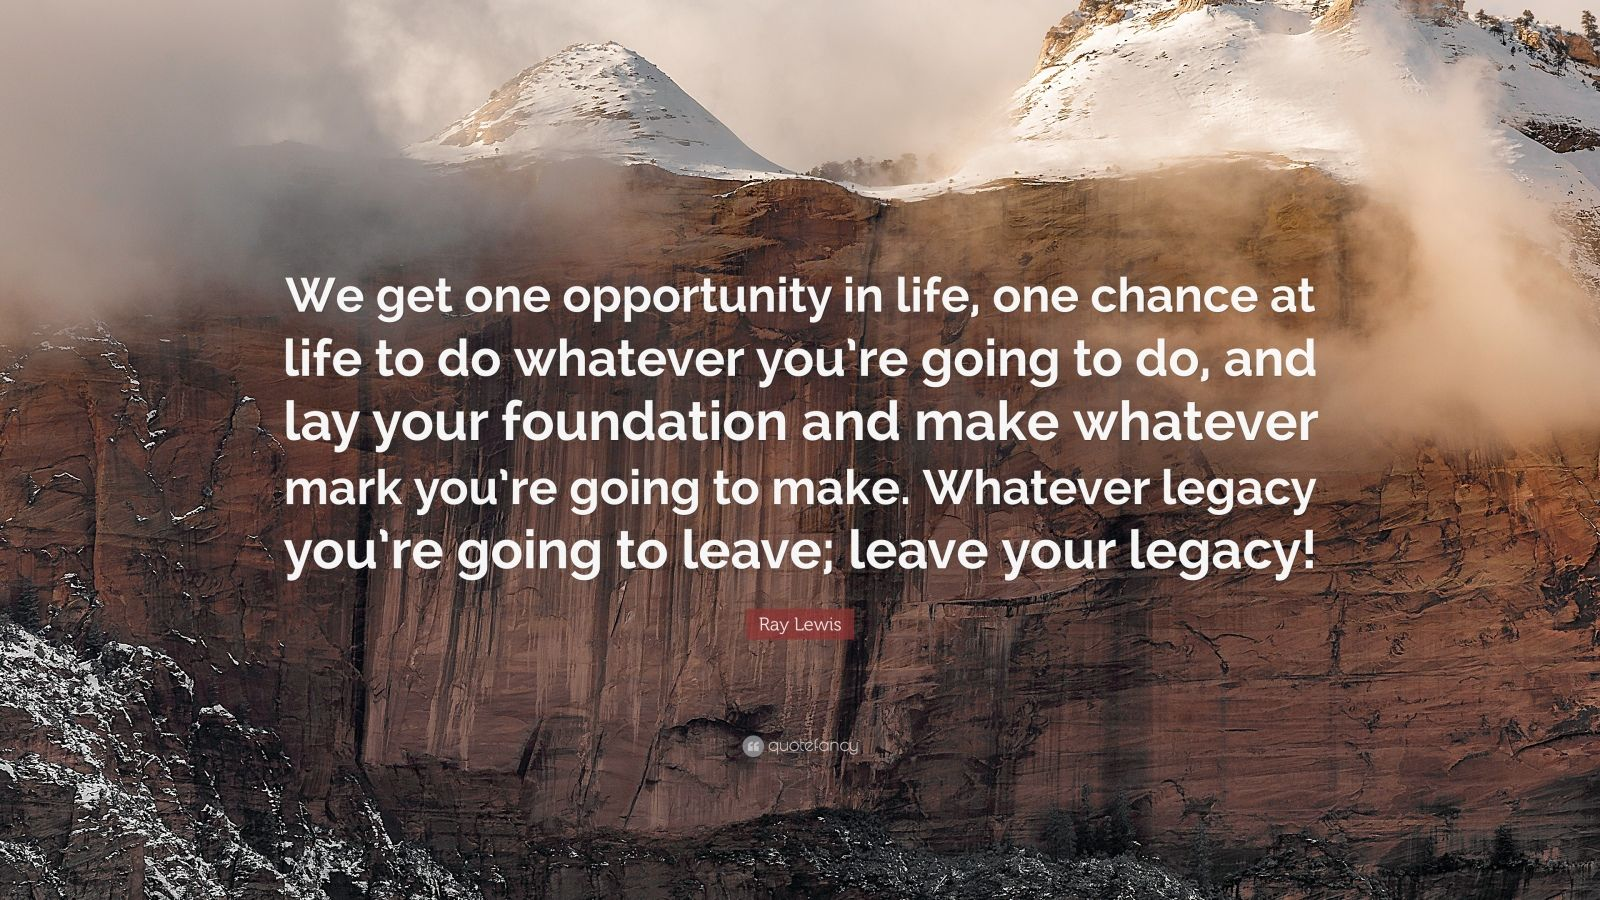 """Ray Lewis Quotes About Life: Ray Lewis Quote: """"We Get One Opportunity In Life, One"""